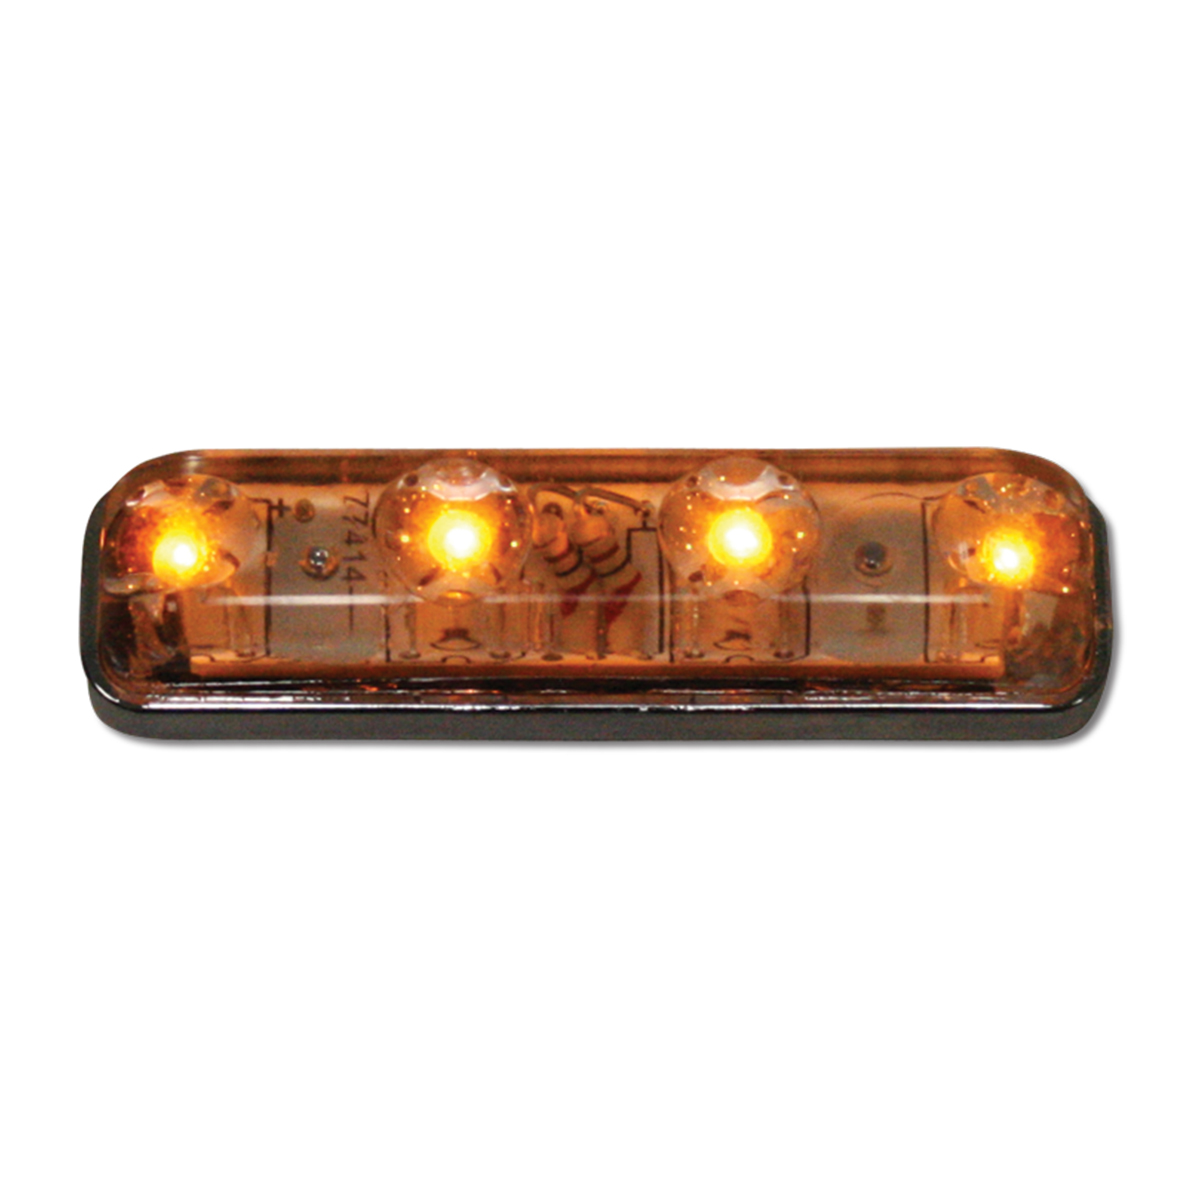 77145 Small Thin Lin Surface Mount LED Light in Amber/Clear